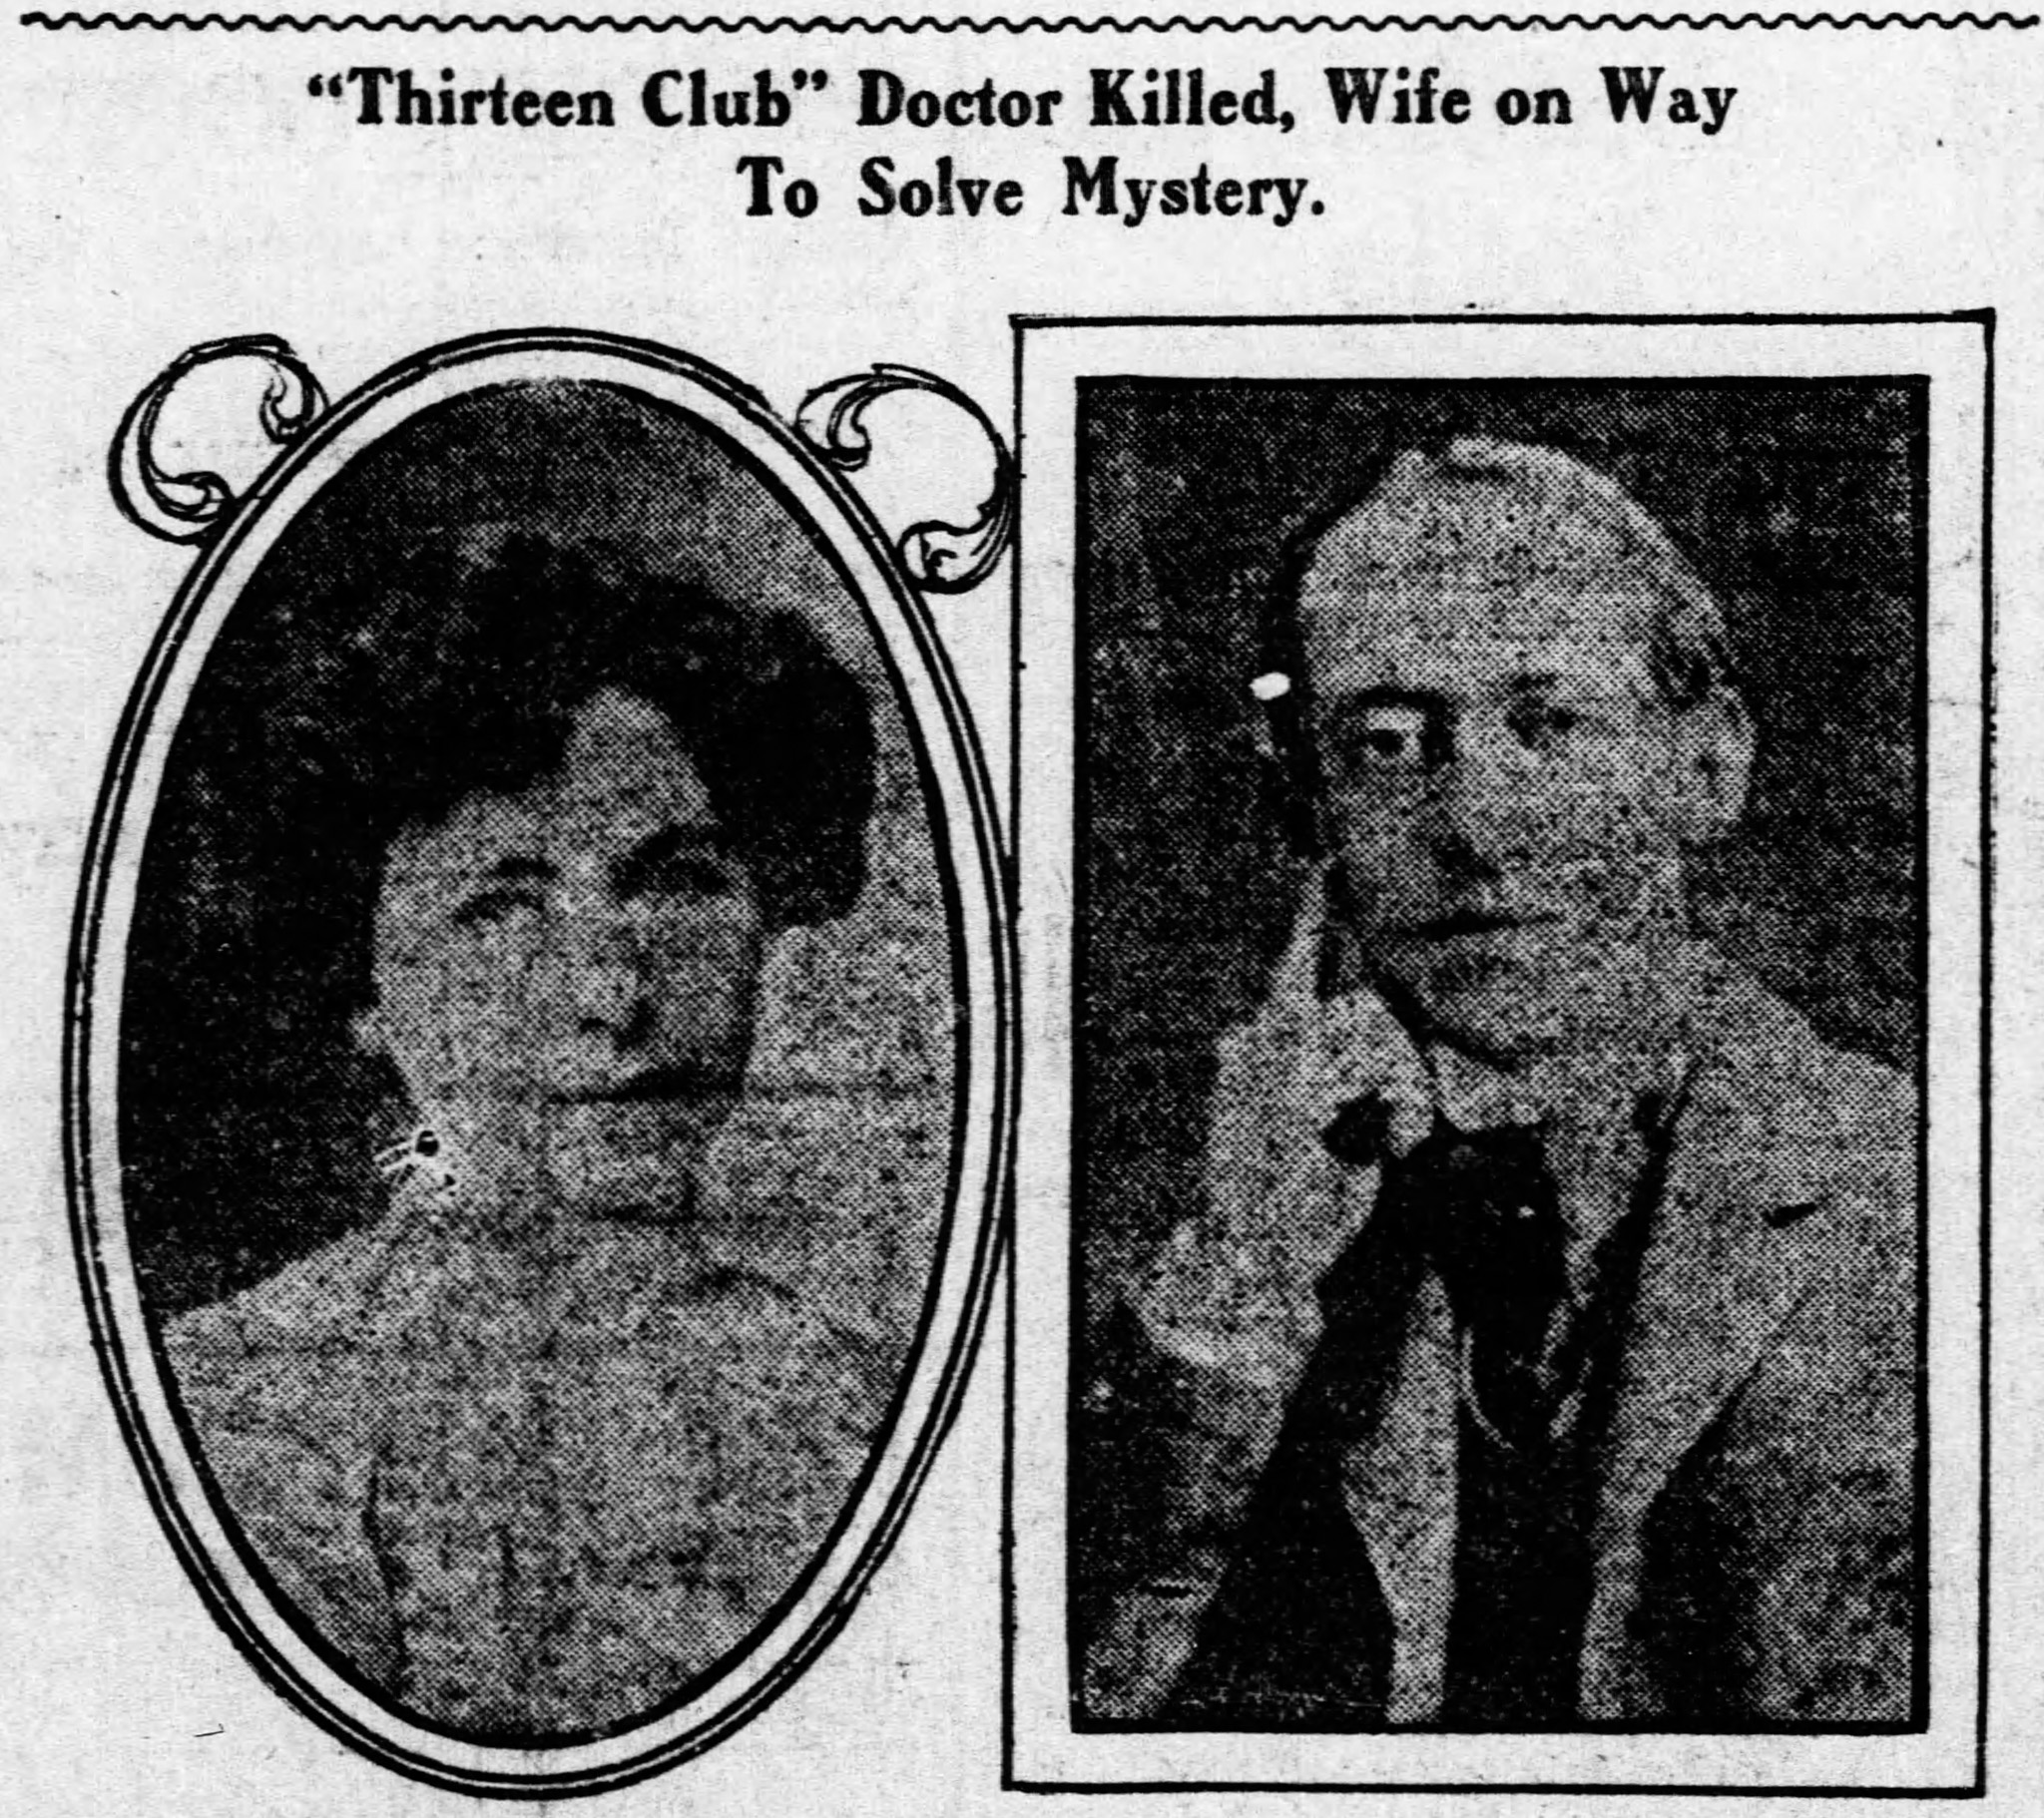 William B Turner Newspaper Death Notice with Photos